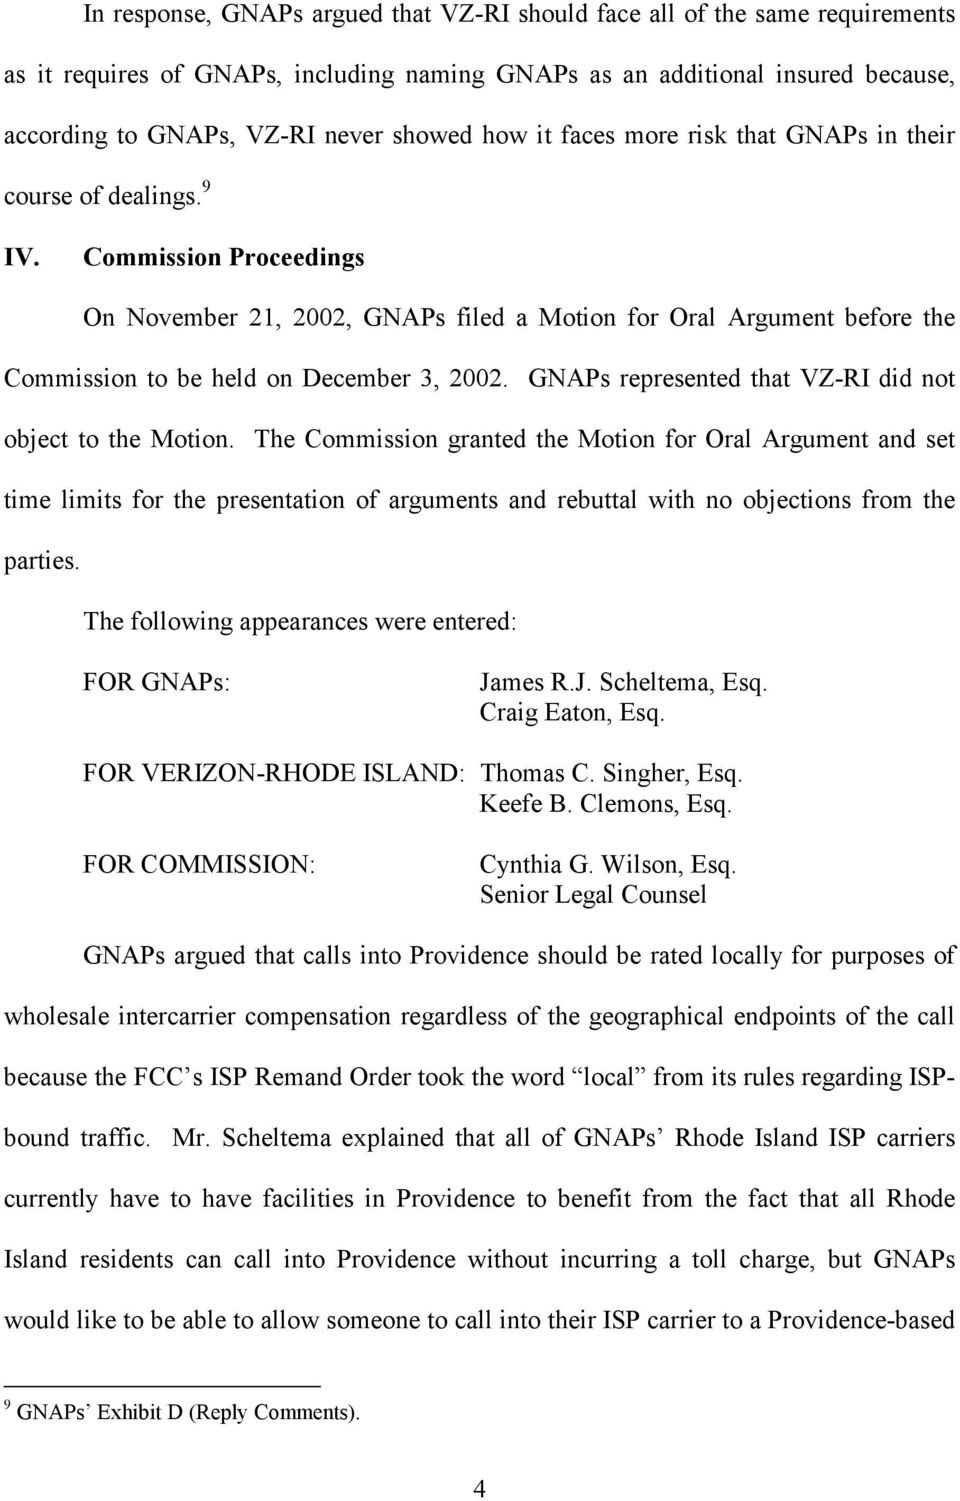 Commission Proceedings On November 21, 2002, GNAPs filed a Motion for Oral Argument before the Commission to be held on December 3, 2002. GNAPs represented that VZ-RI did not object to the Motion.